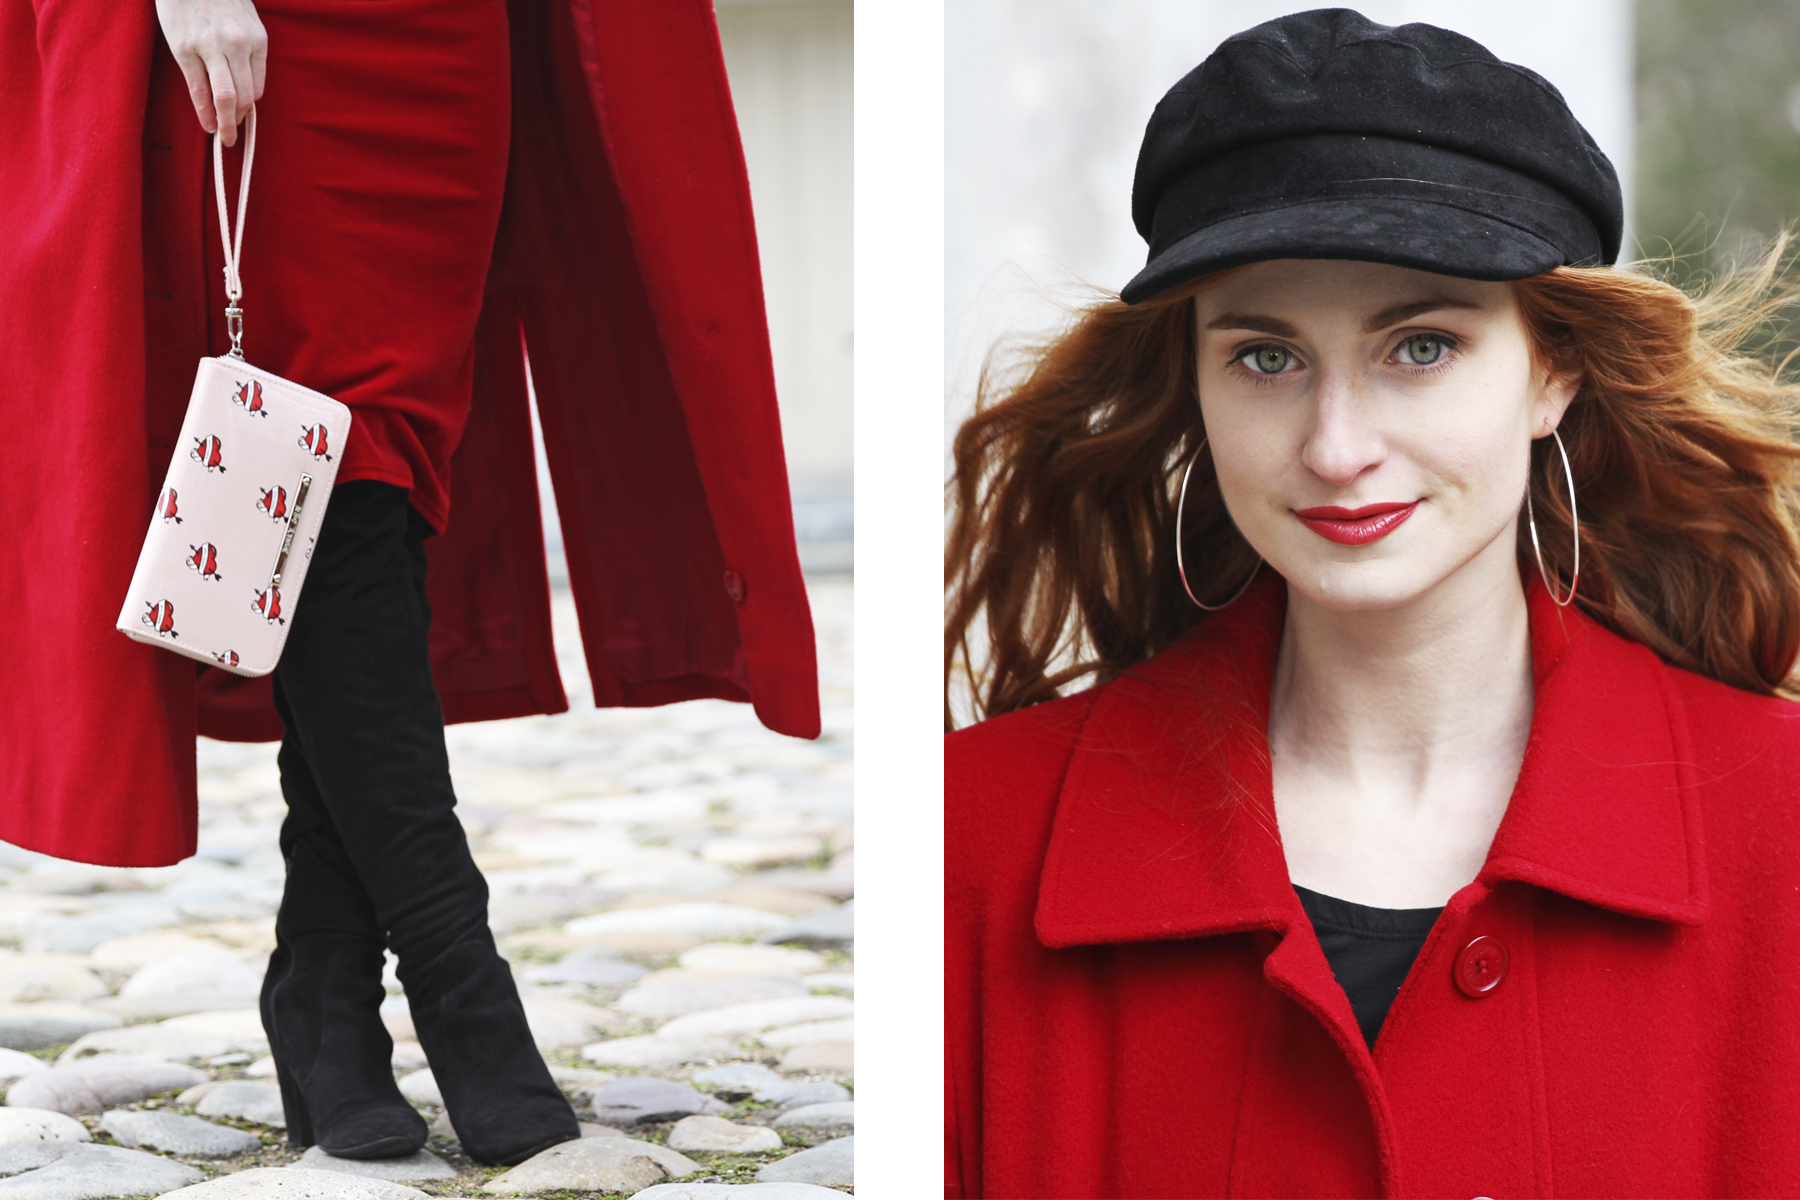 Erin Leigh She's Red Haute wearing red dress and red coat